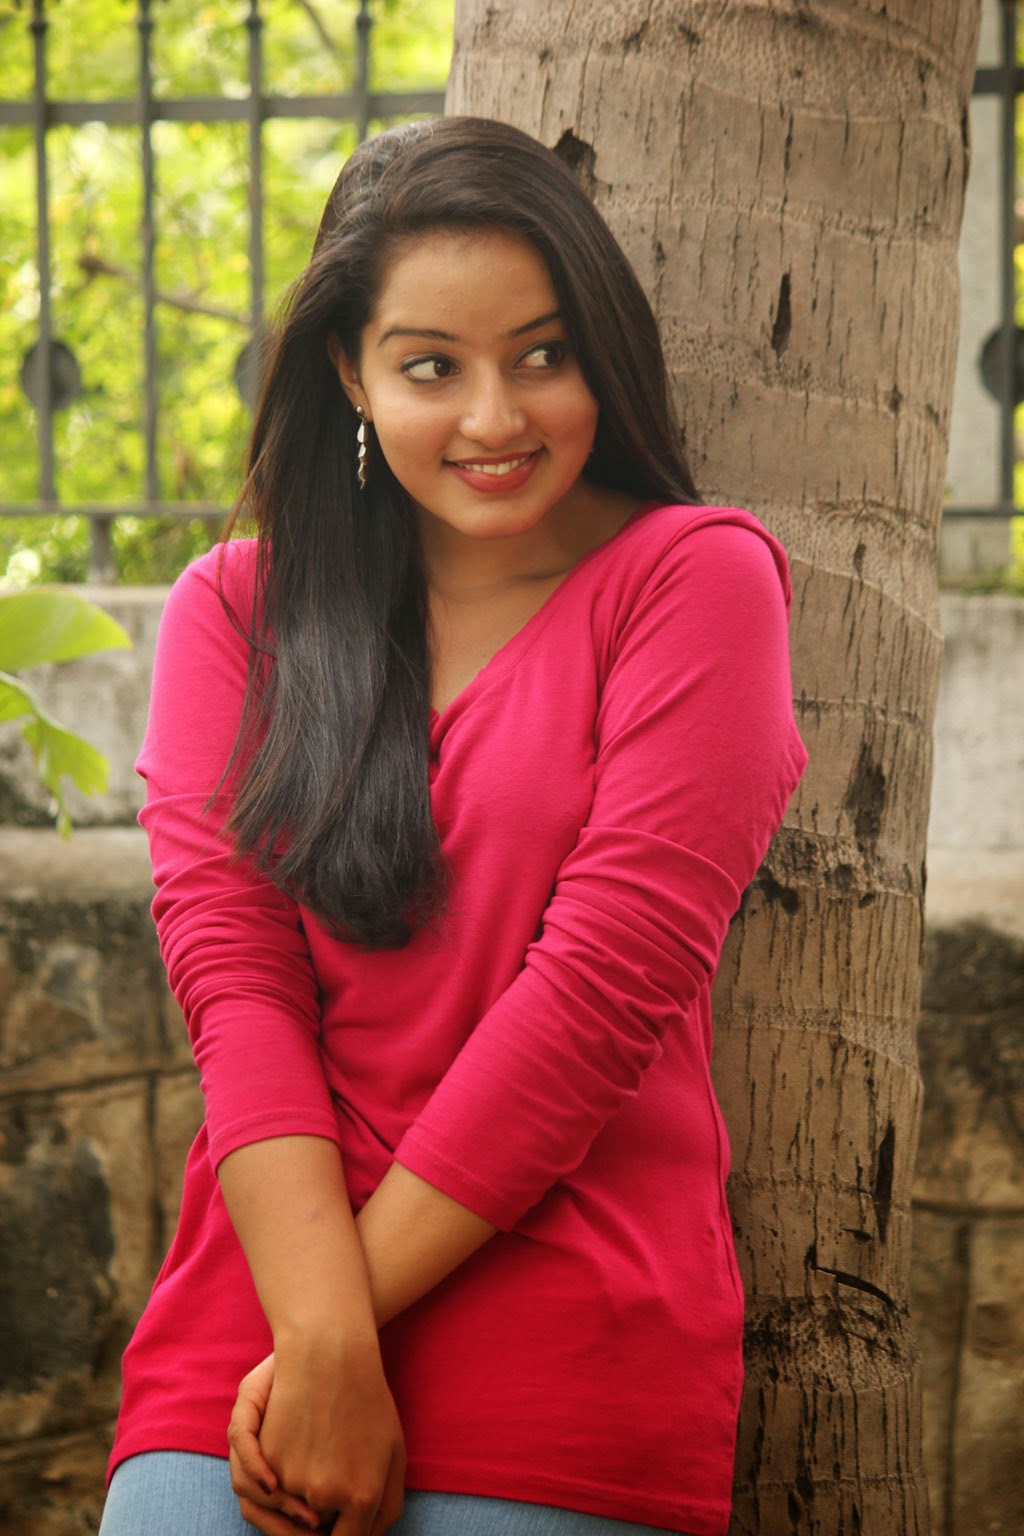 Hot Photos of Mallu Girl Malavika Menon